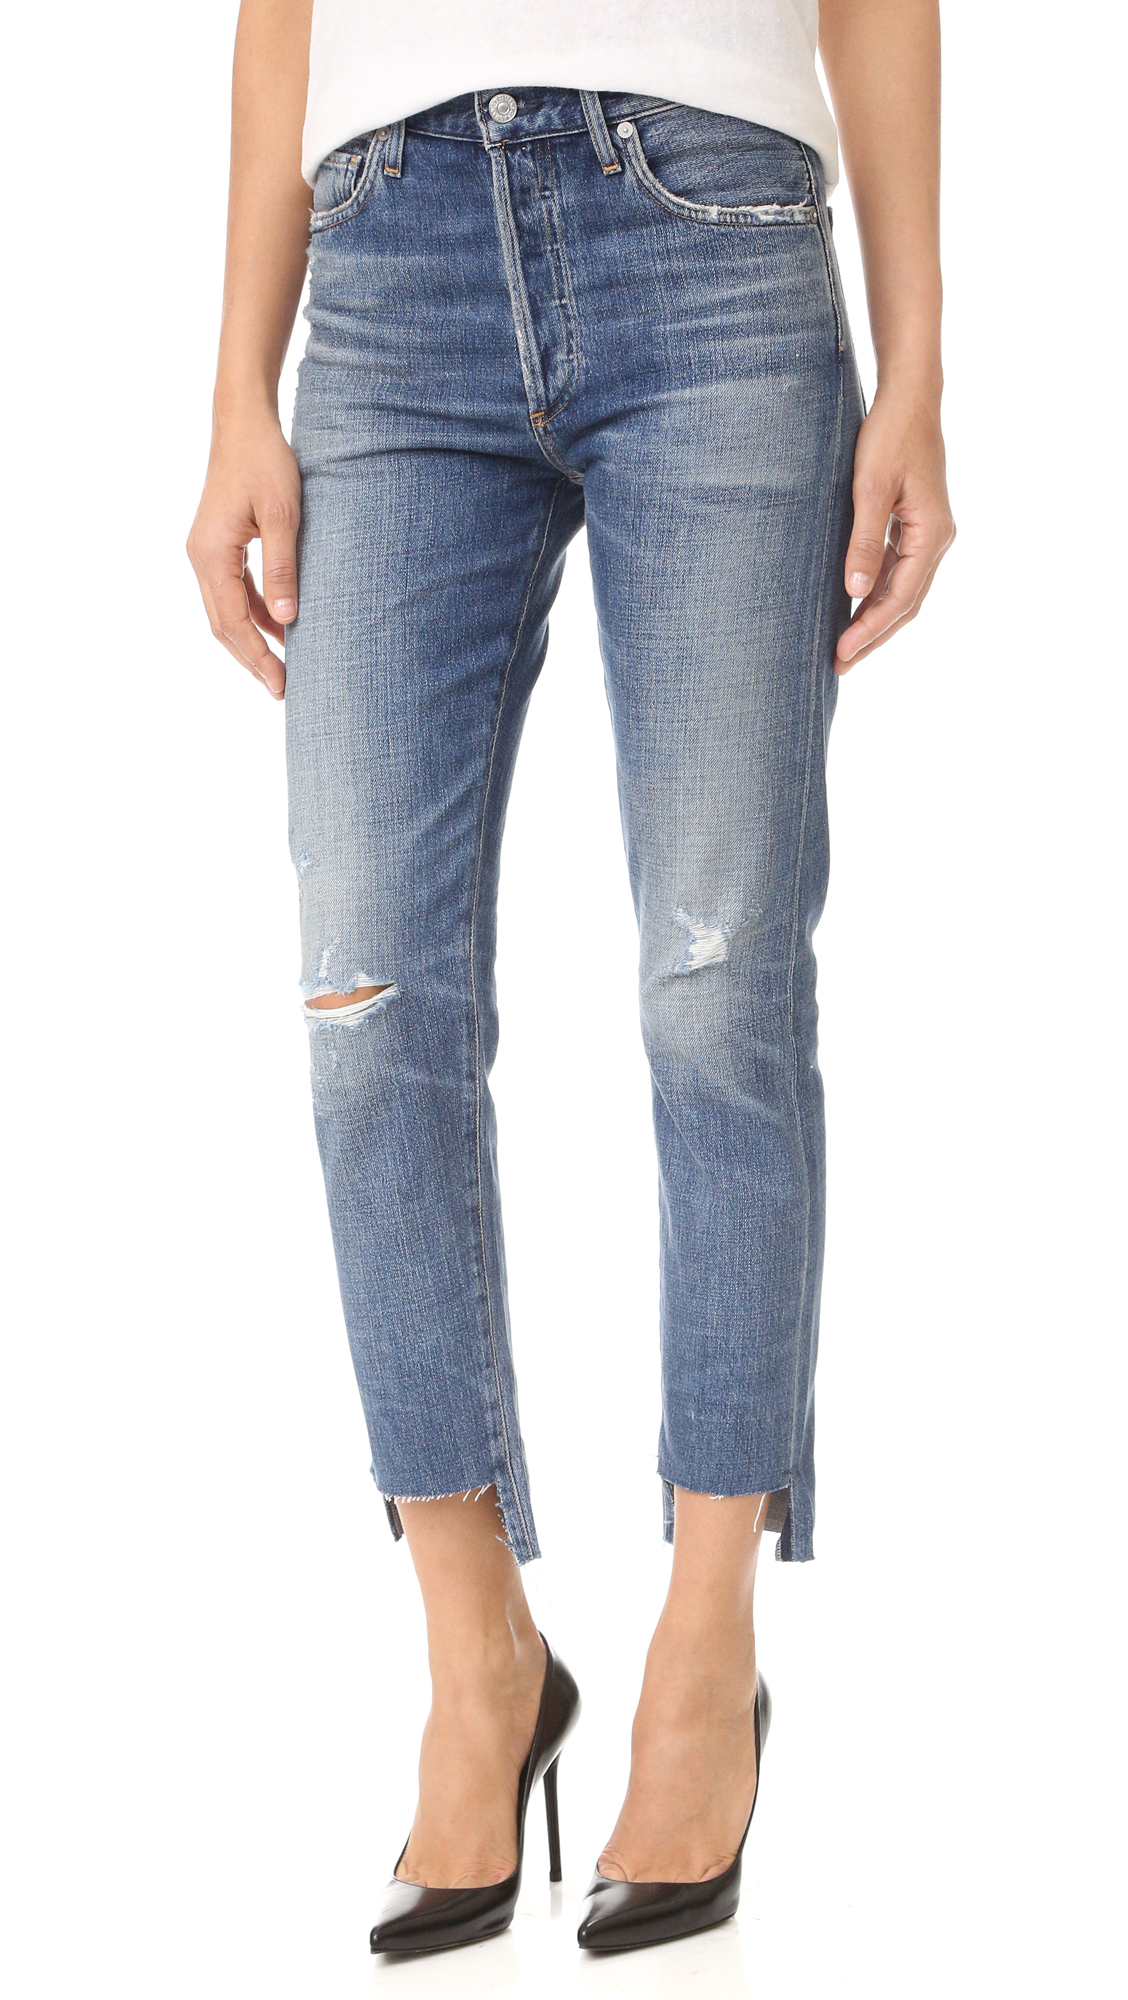 Raw, notched hems lend a hand cropped look to these heavily worn and faded Citizens of Humanity jeans. 5 pocket styling. Button fly. Fabric: Lightweight denim. 77% cotton/23% rayon. Wash cold. Made in the USA. Imported materials. Measurements